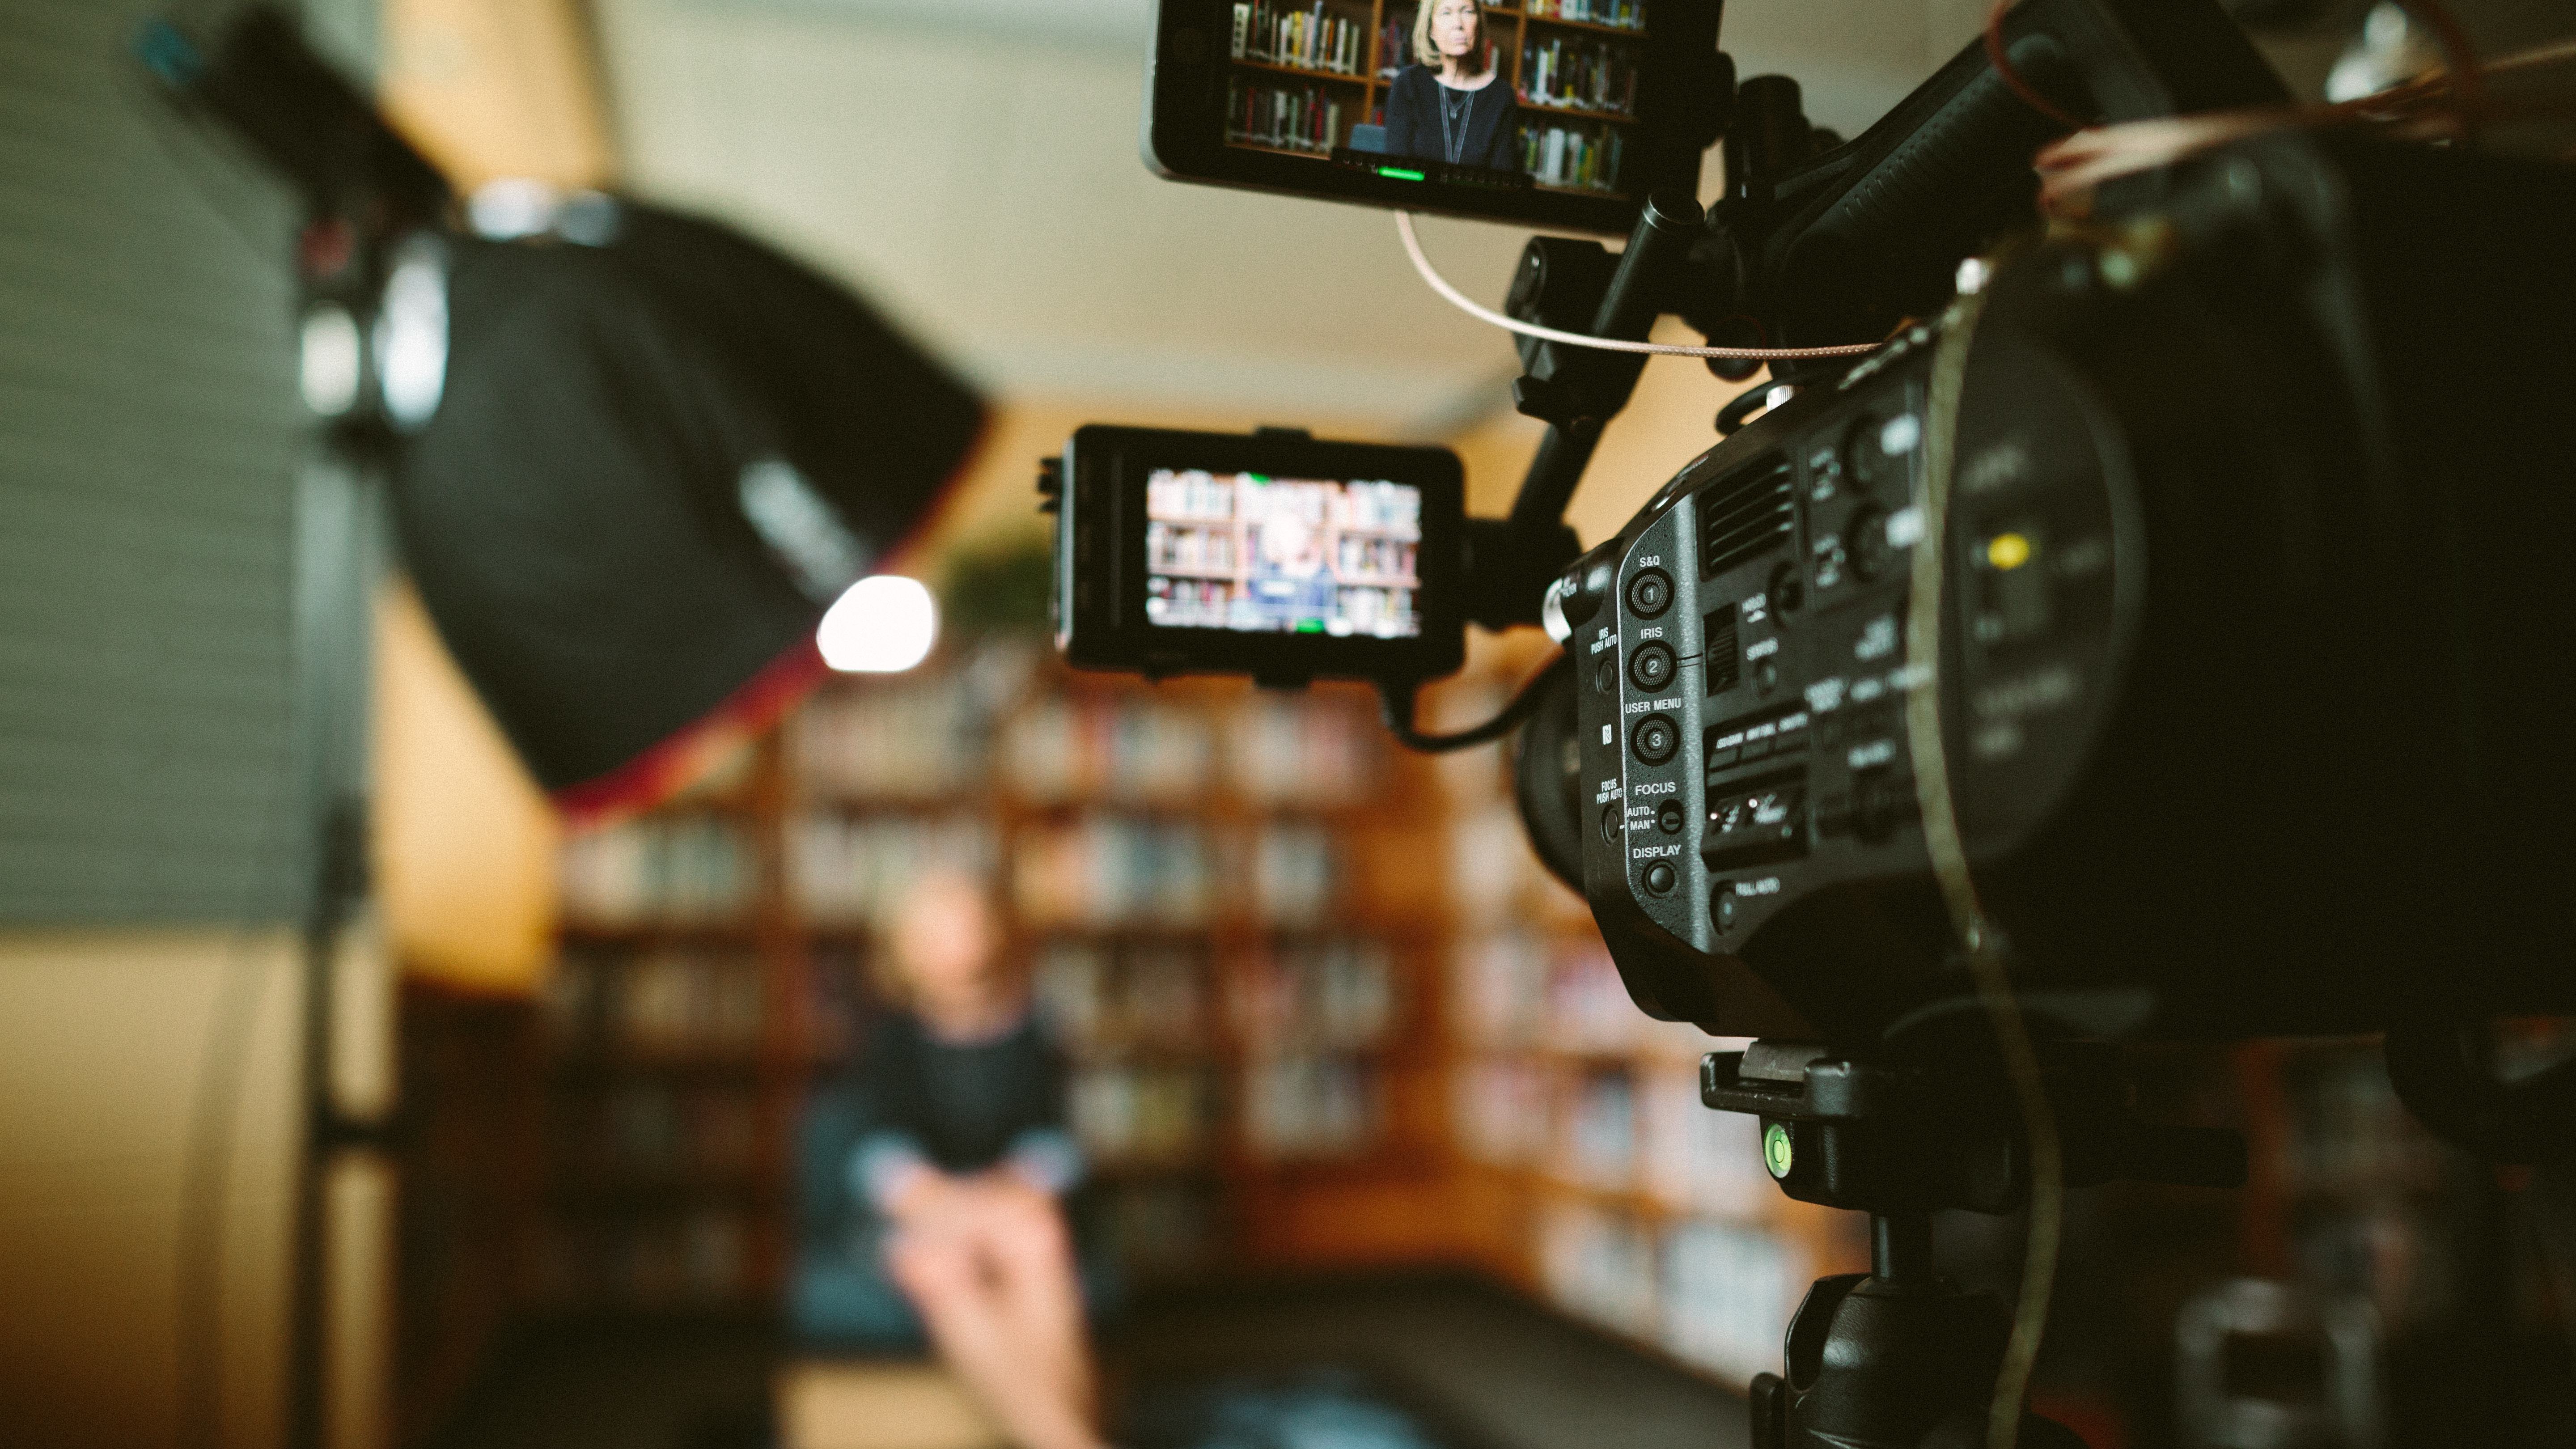 Photo of a black camera recording a person sitting in front of bookshelves in a dimly lit room